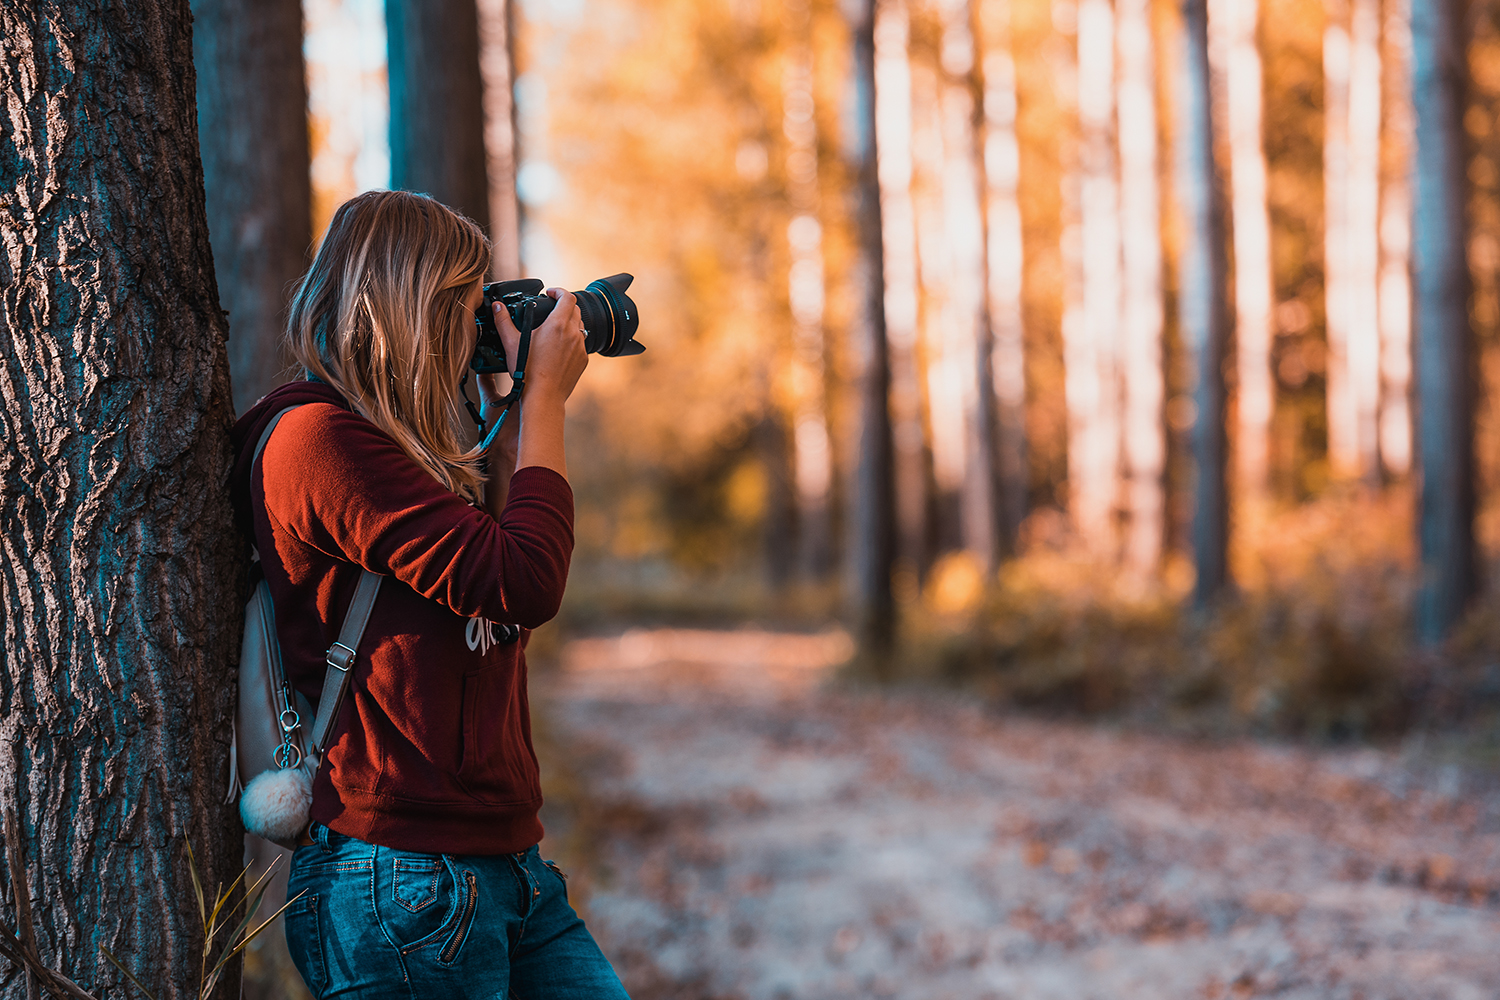 Should You Give Free Photography Services to Family and Friends?